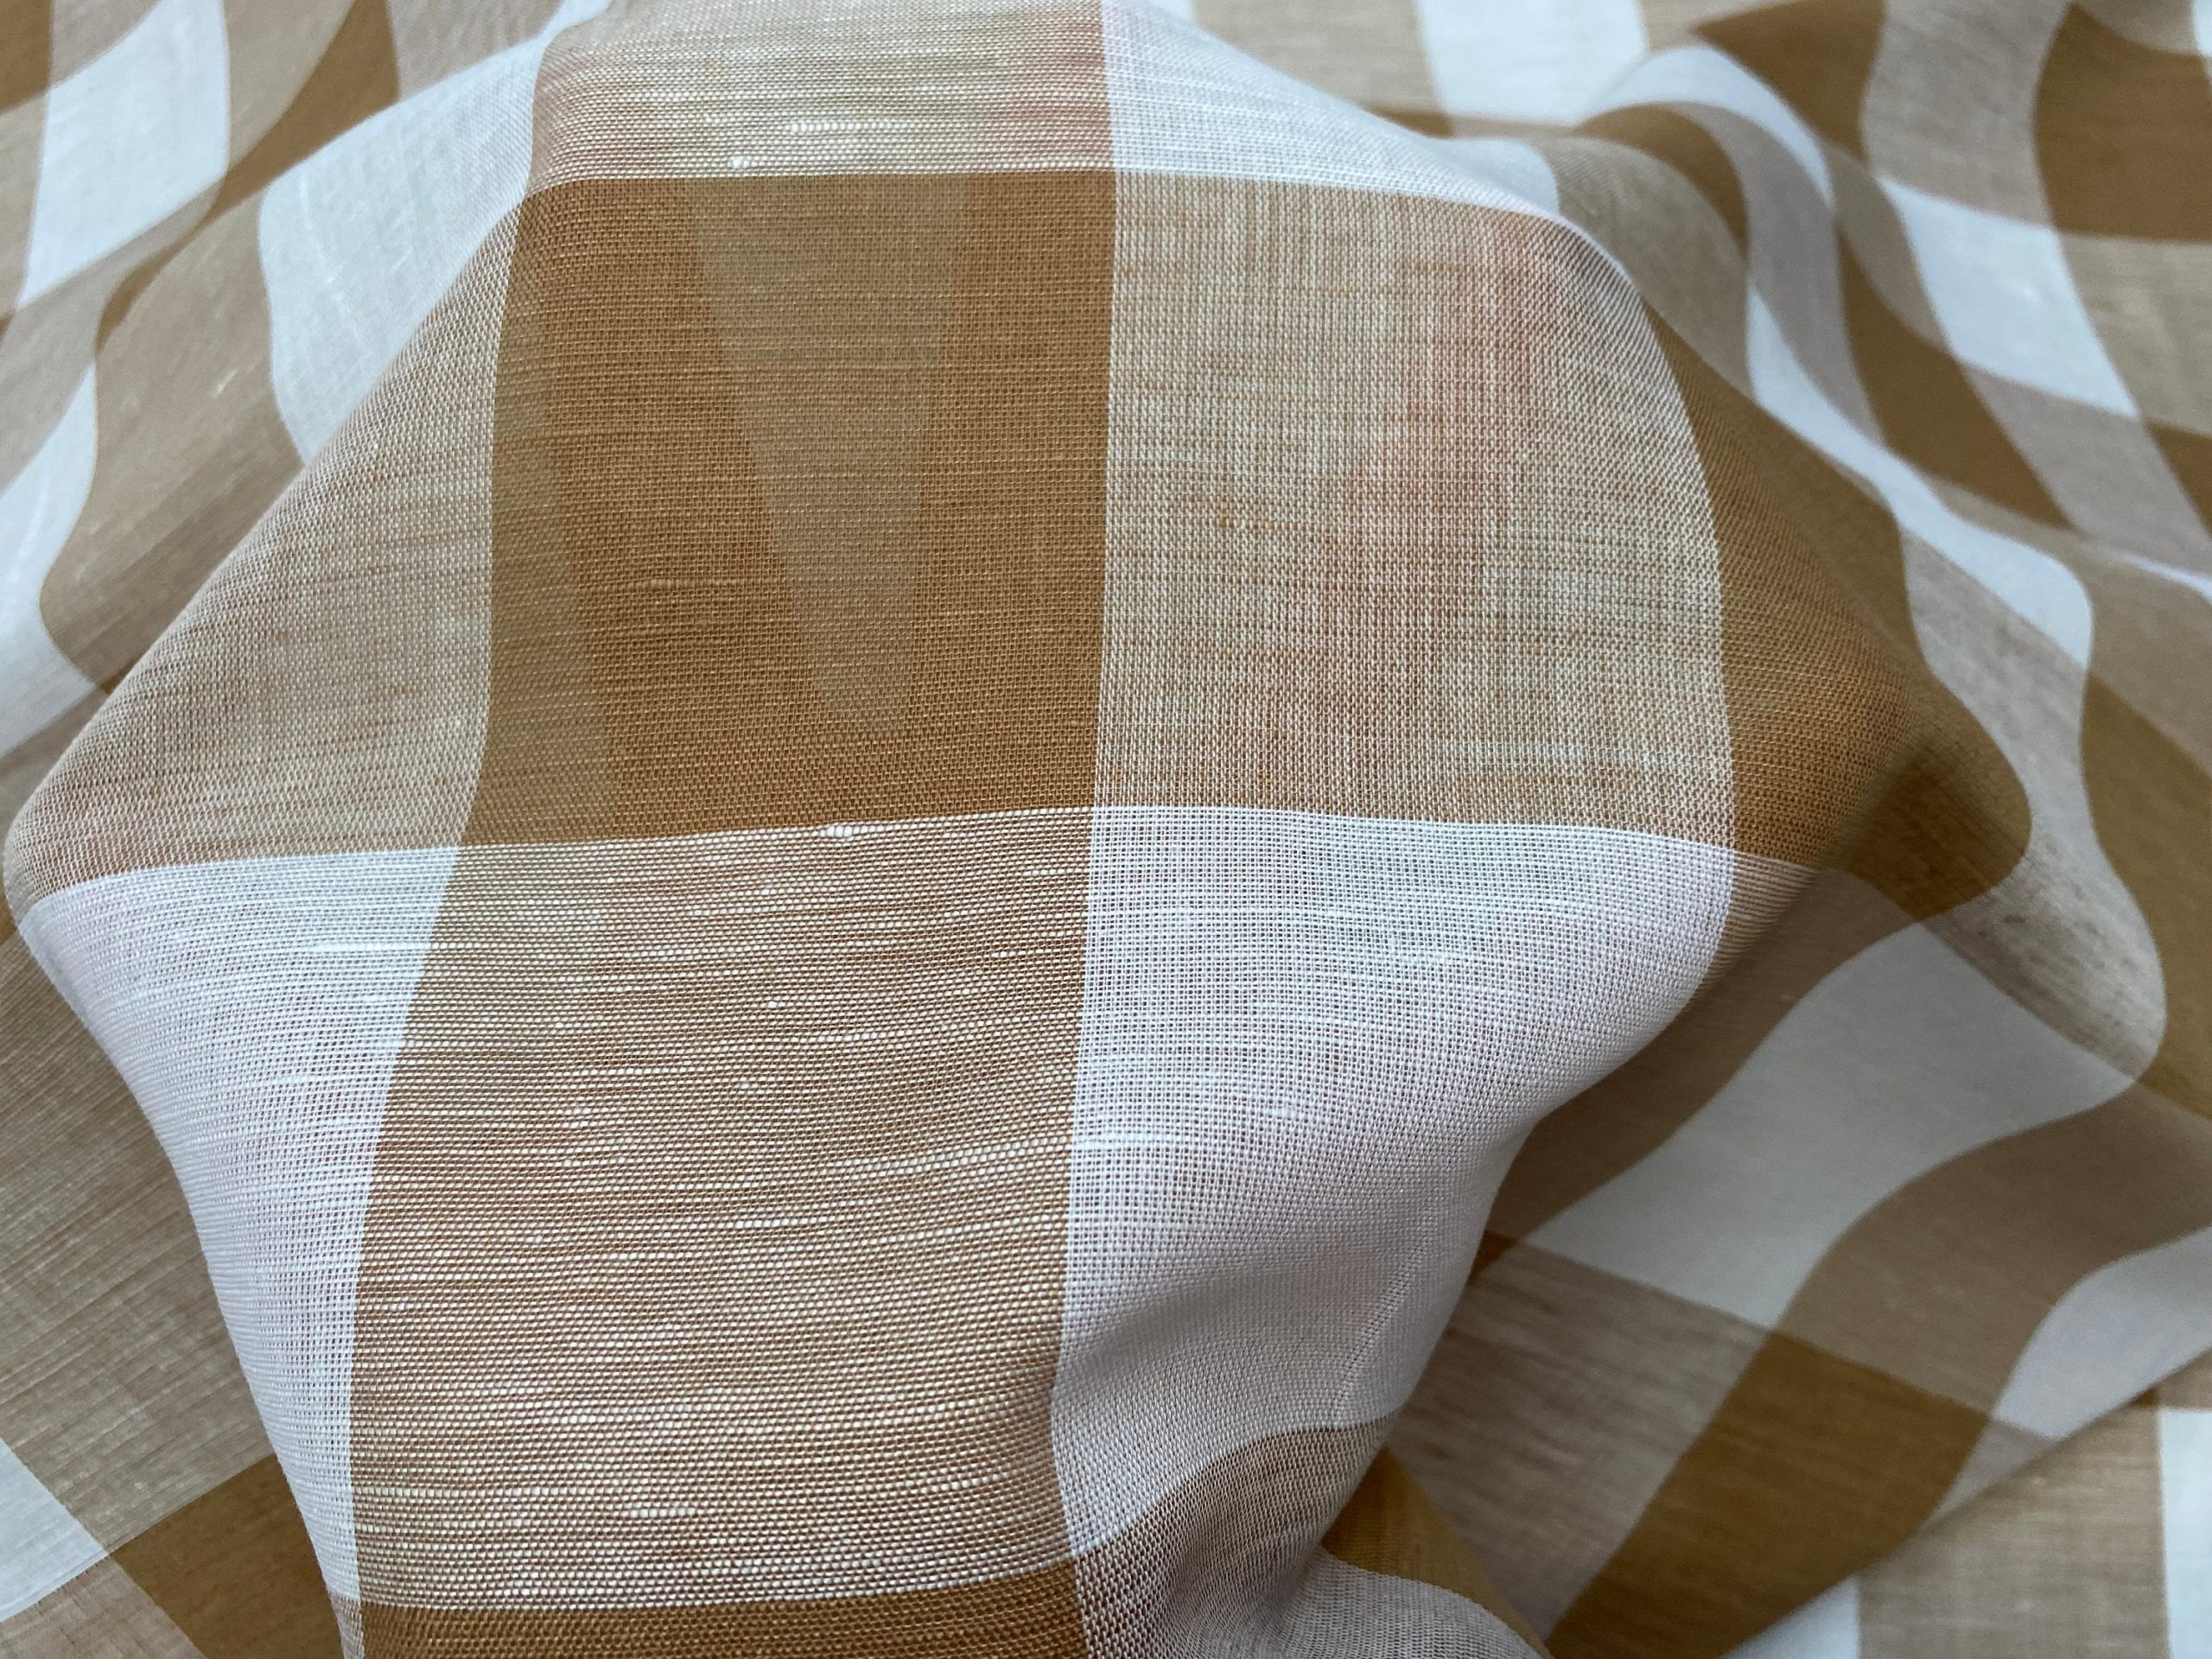 Gingham Checked Linen Fabric Plaid Material Buffalo Check Yarn Dressmaking, Curtains – 150cm wide – TAUPE Brown & WHITE Checks